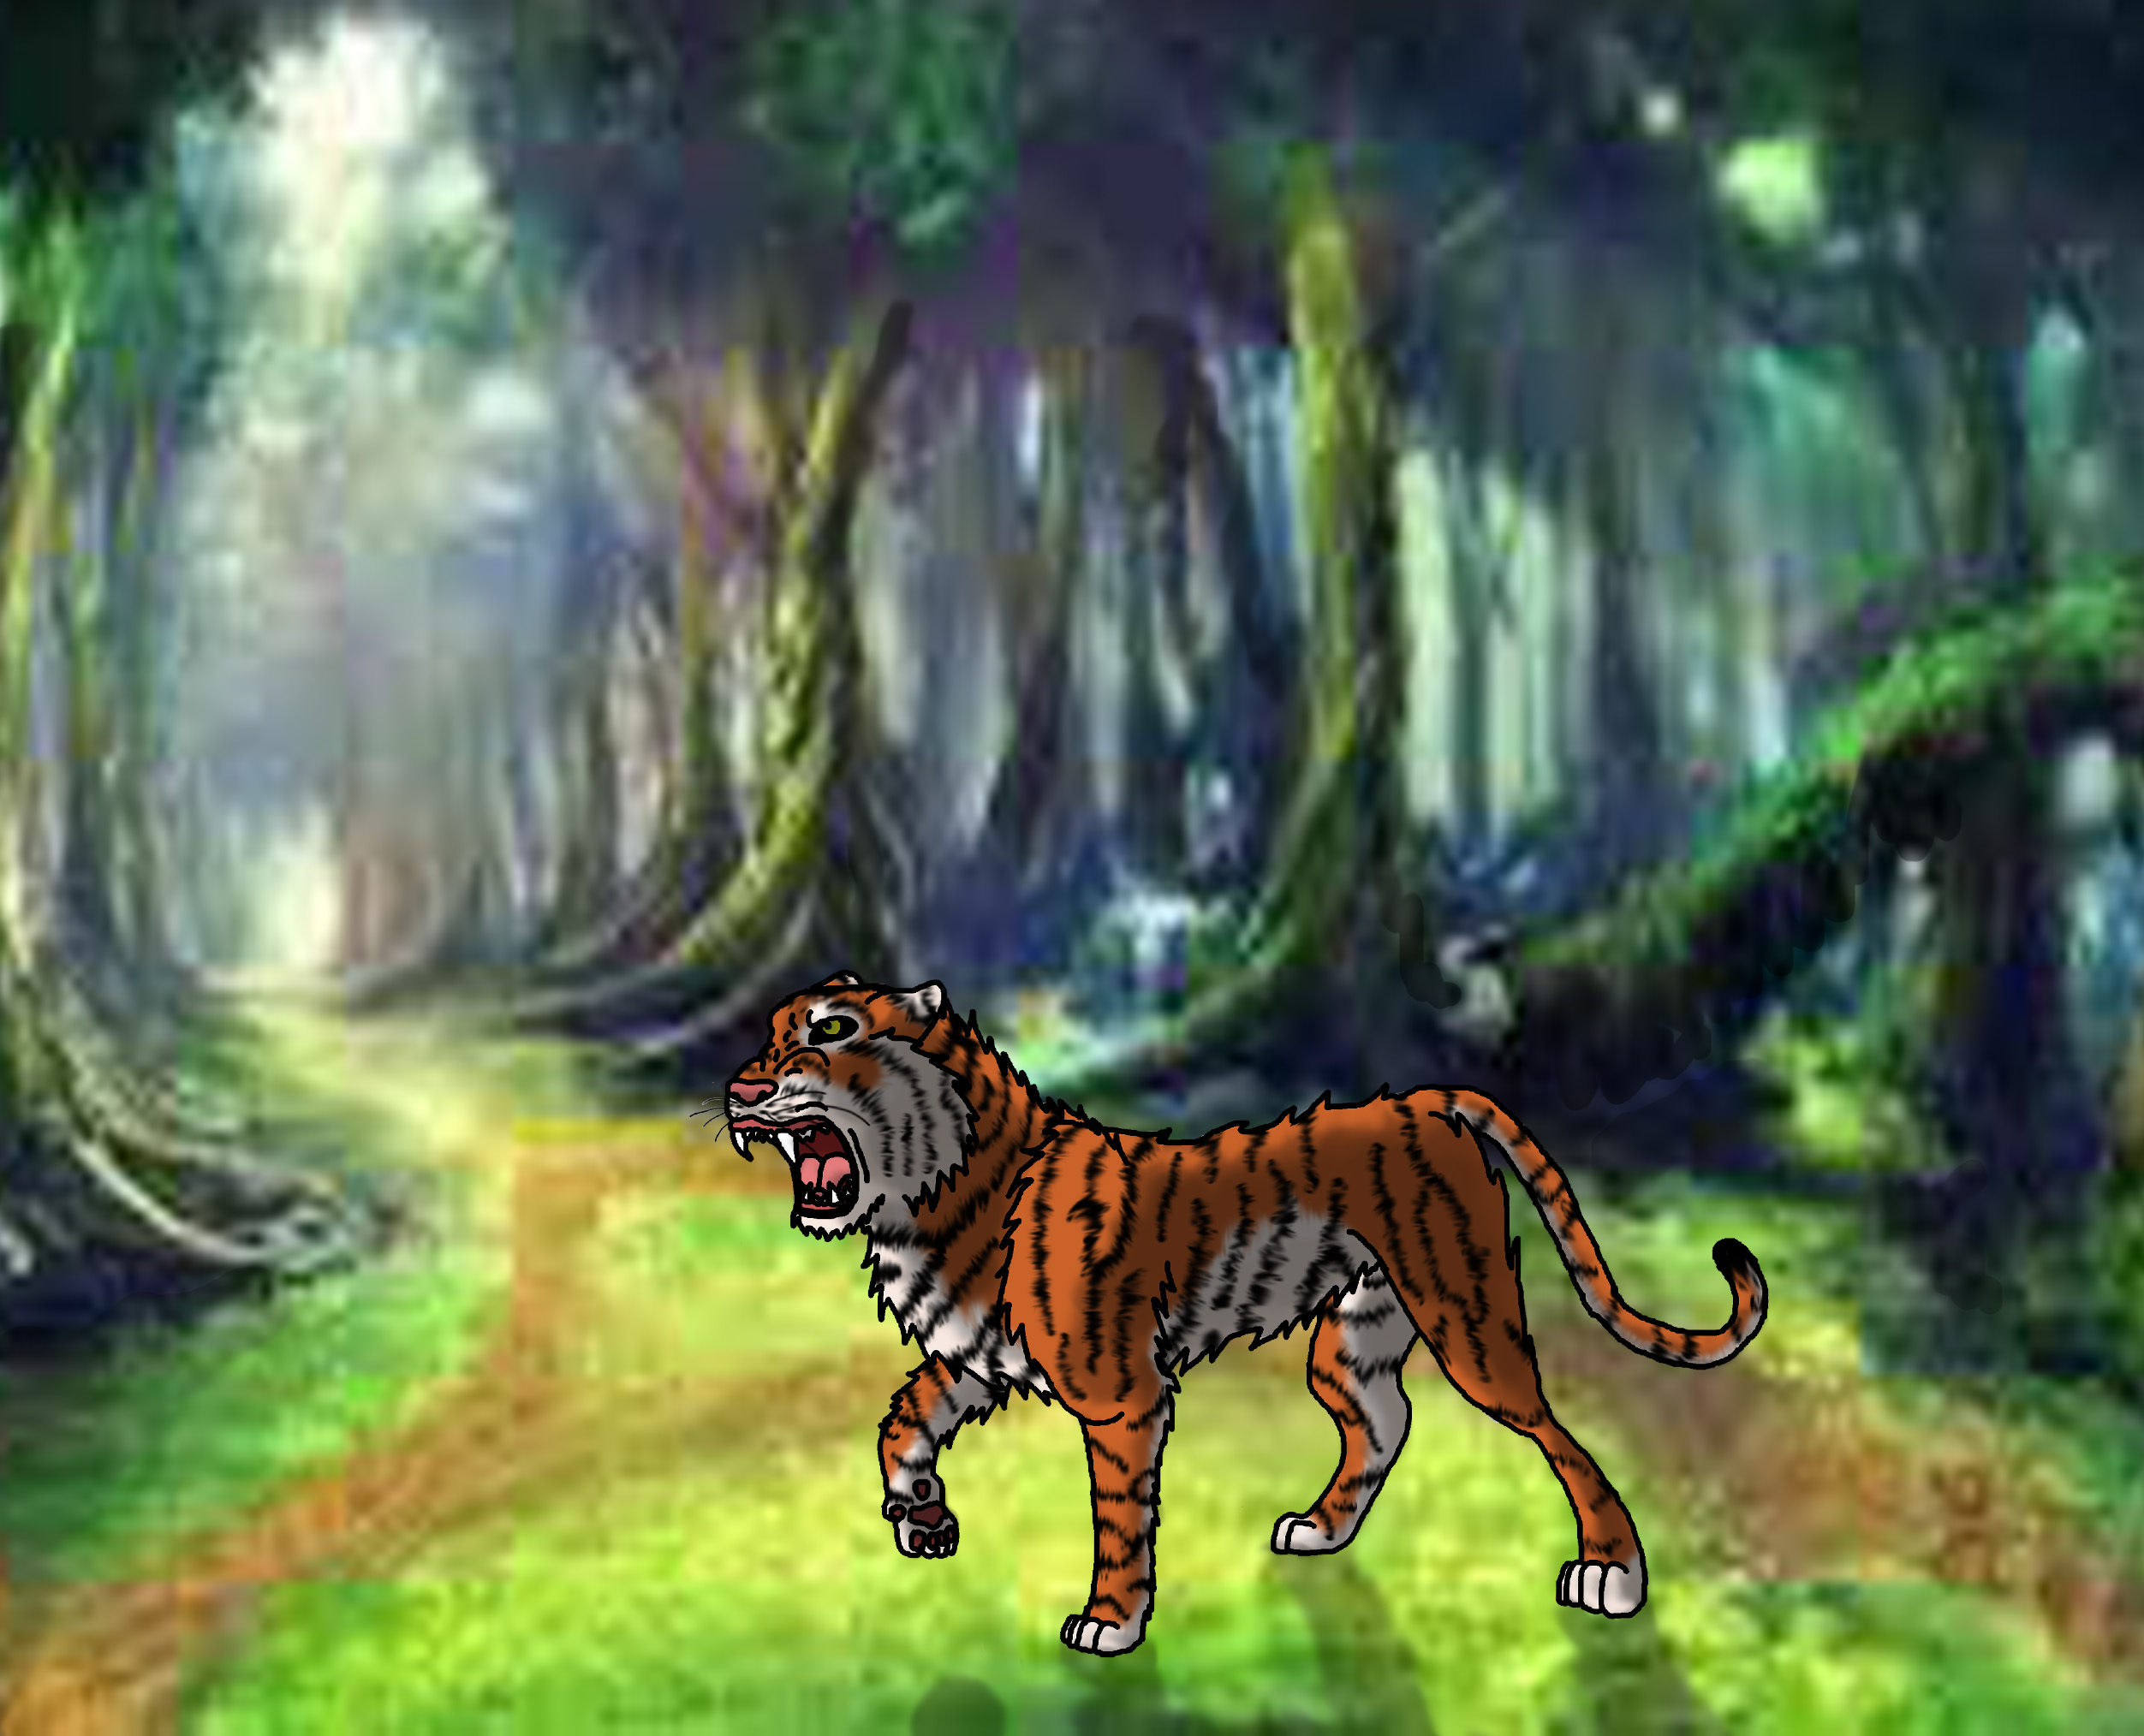 IT'S A FREAKING TIGER!!!!